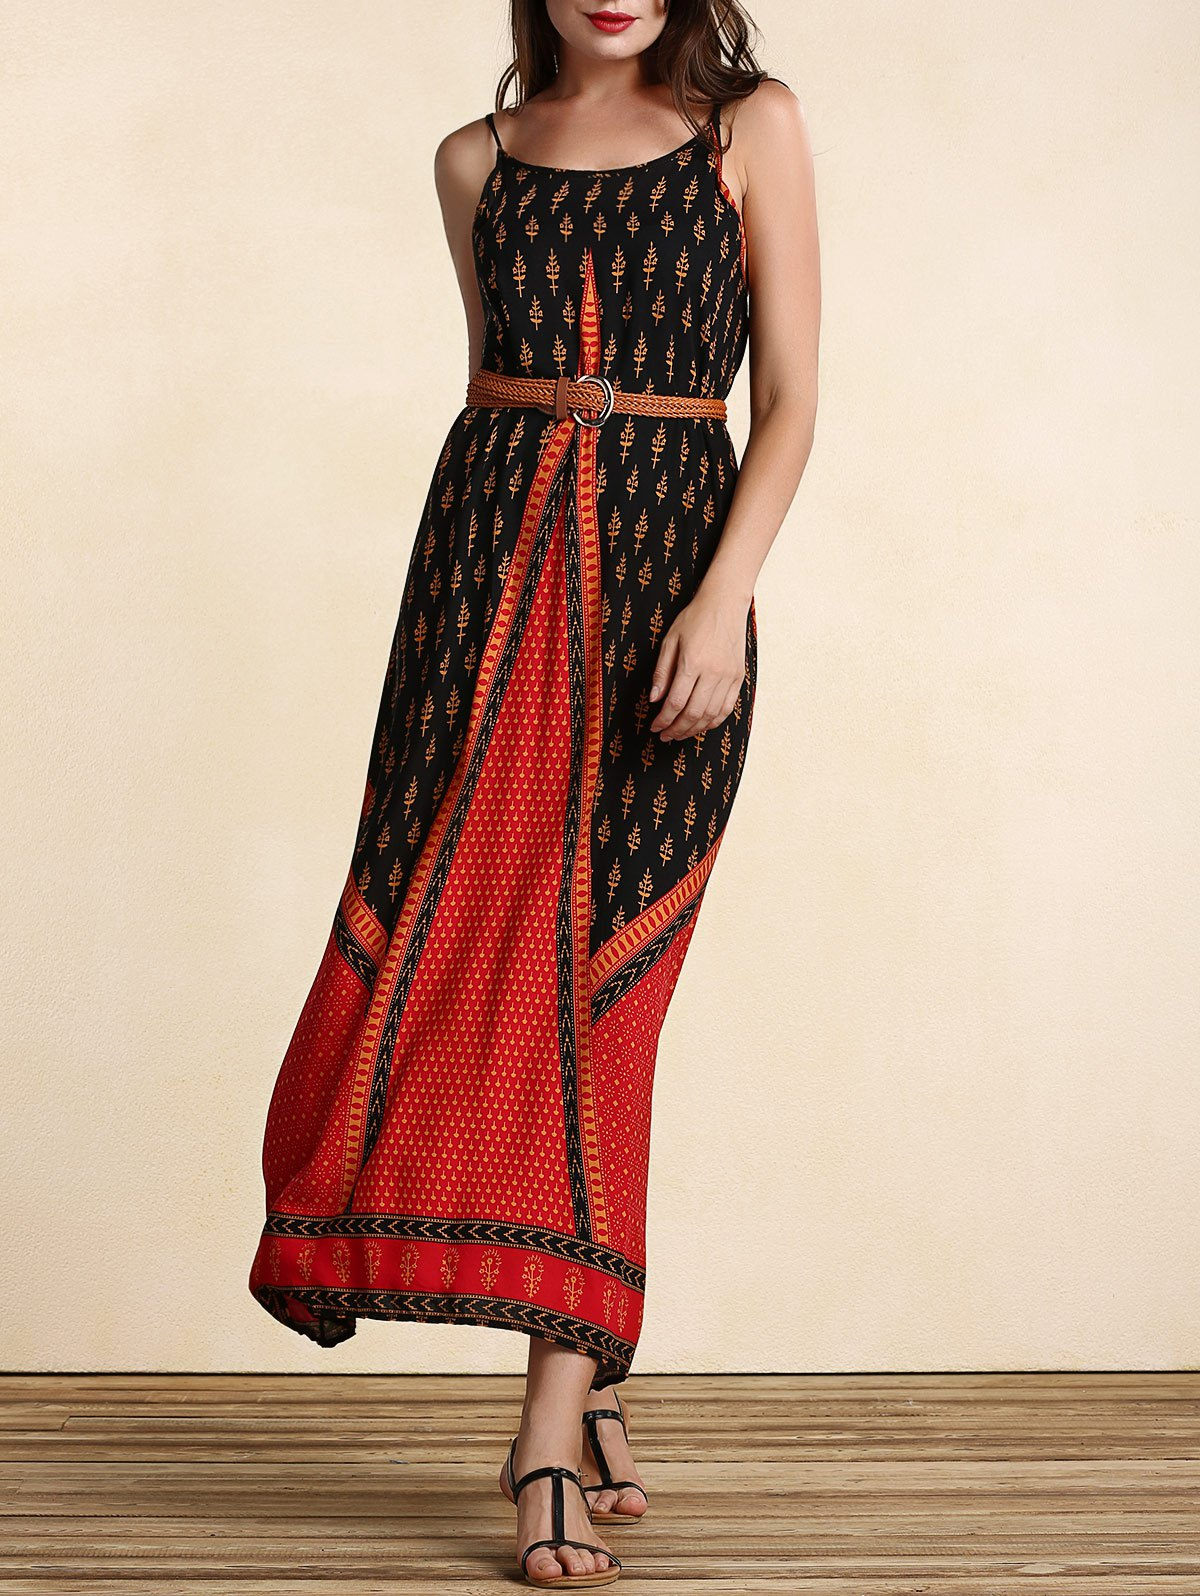 Chic Women's Belted Ethnic Print Dress - WINE RED S